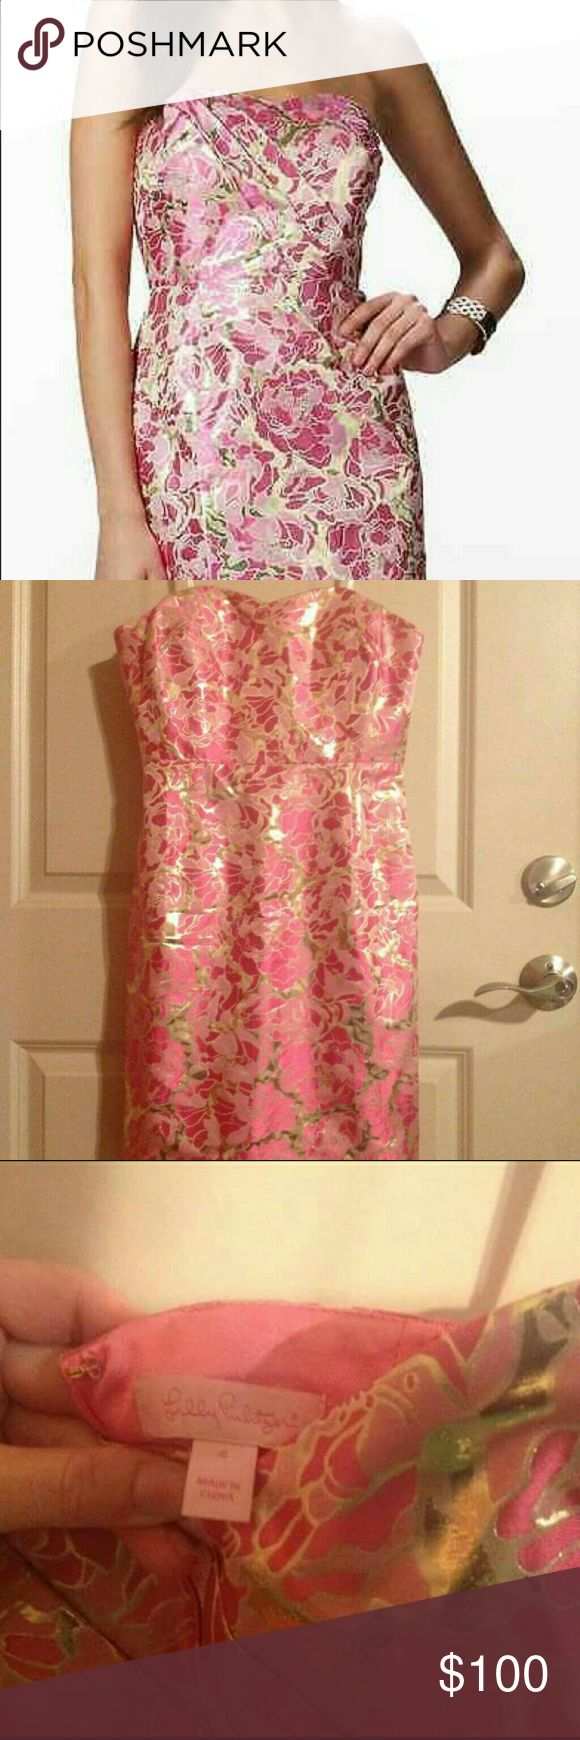 Lilly Pulitzer Raya Pink & Gold Dress, Size 4 Absolutely beautiful pink & gold strapless Lilly Pulitzer Raya Floral Metallic Jacquard dress.   30% silk, 70% metallic.  Perfect for a shower, rehearsal, wedding guest, or semi formal.  Structured bust.  Concealed back zip with clasp. Lilly Pulitzer Dresses Strapless